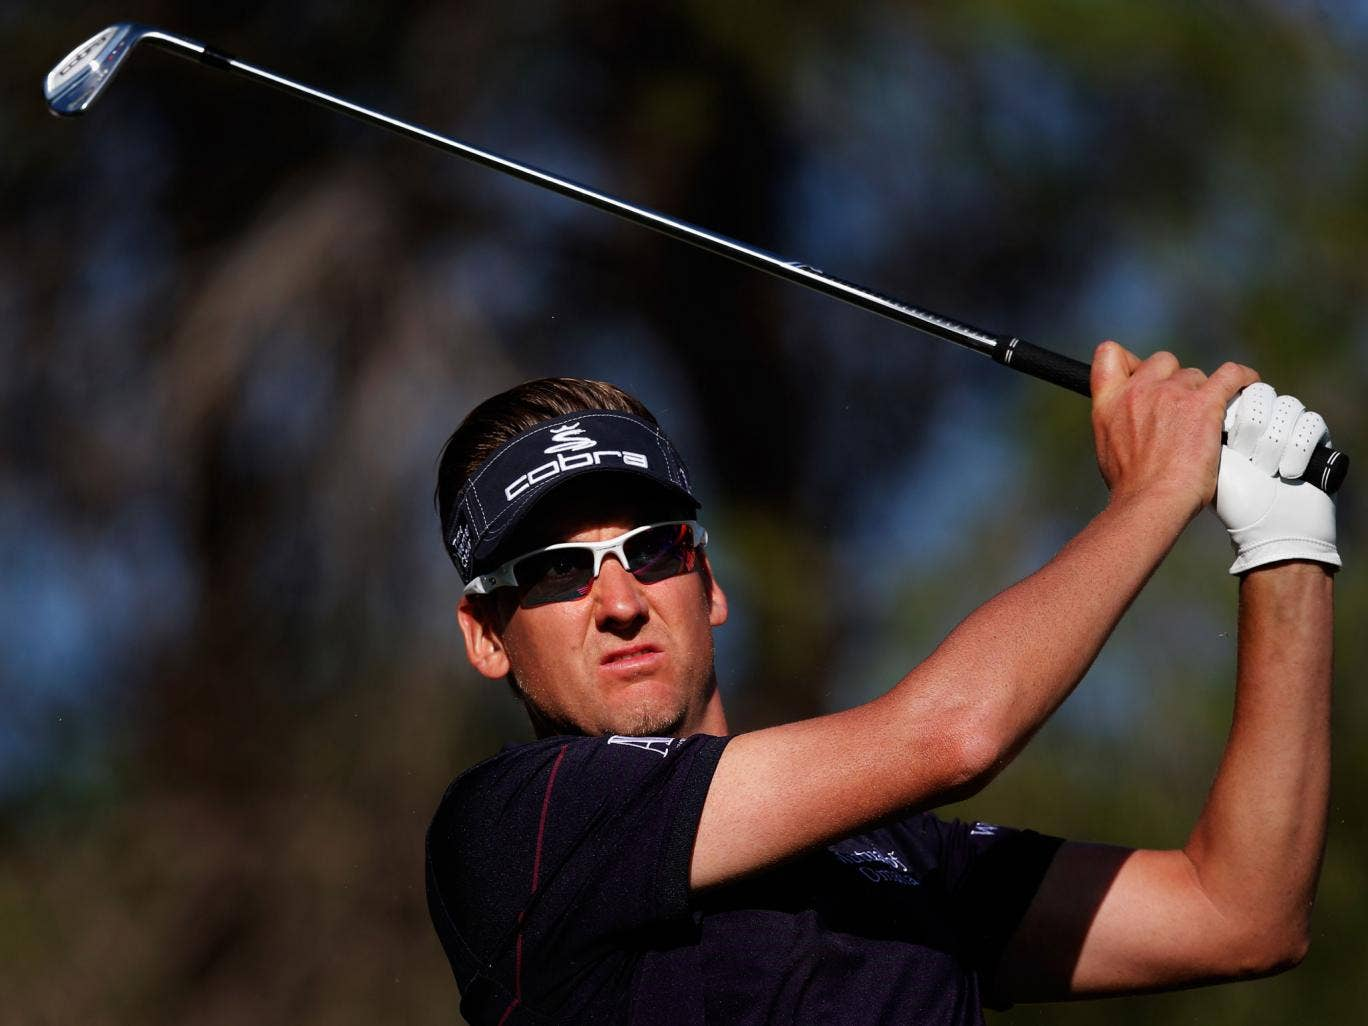 Ian Poulter wants to finish the season with the Race to Dubai title to show he can succeed when chasing personal glory